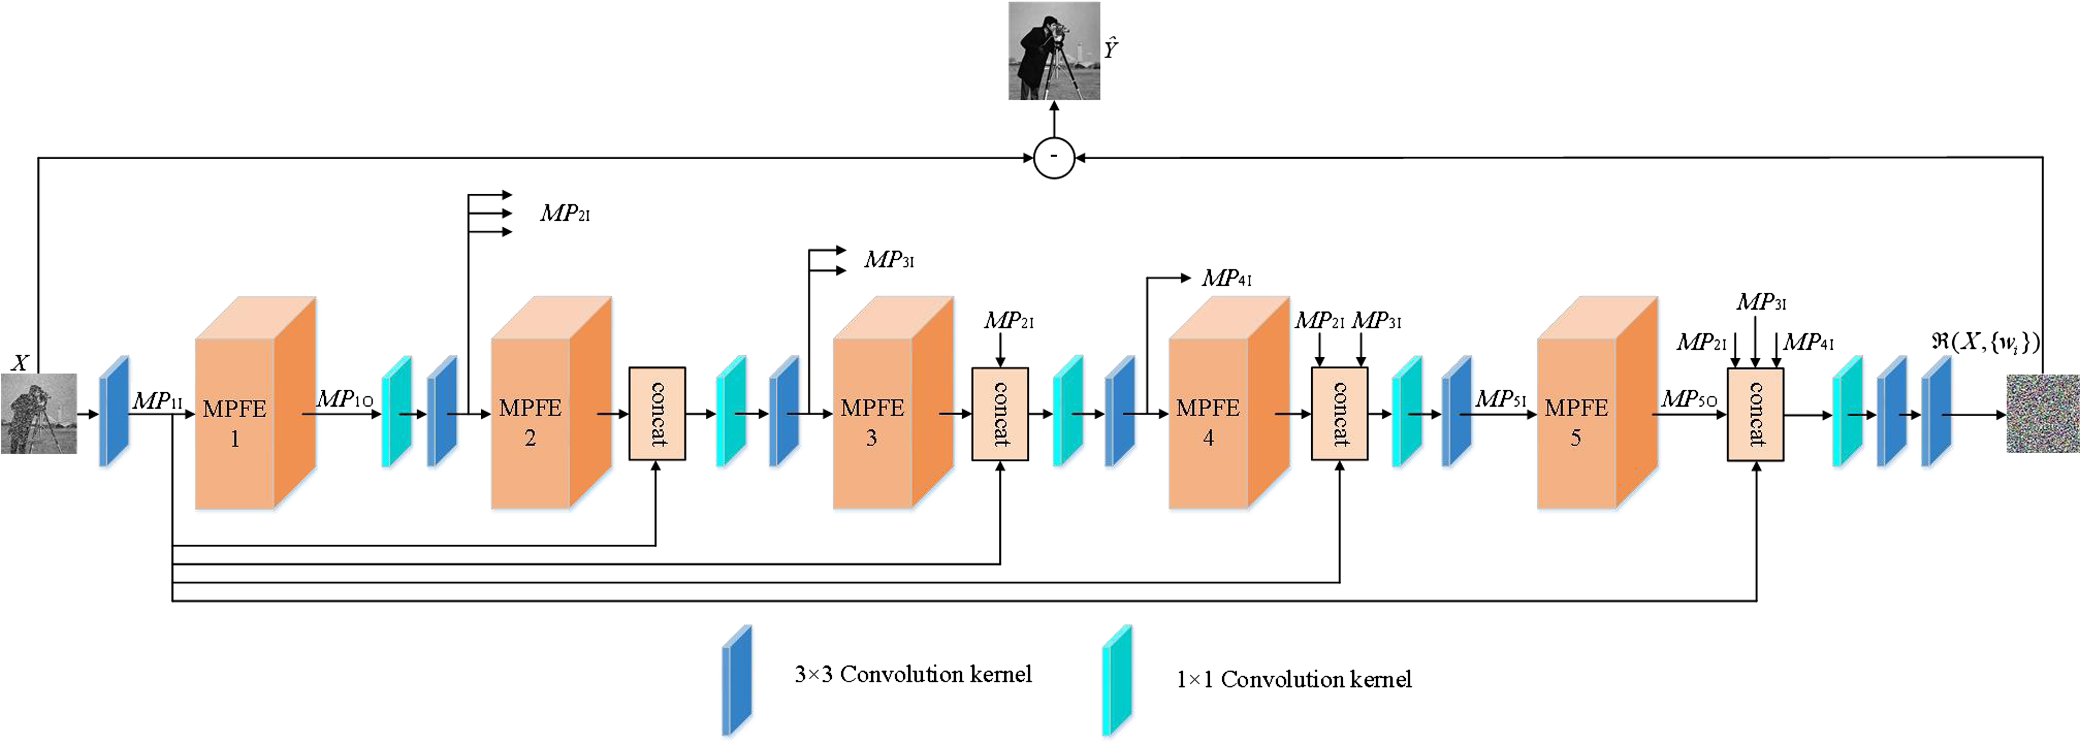 Multiscale parallel feature extraction convolution neural